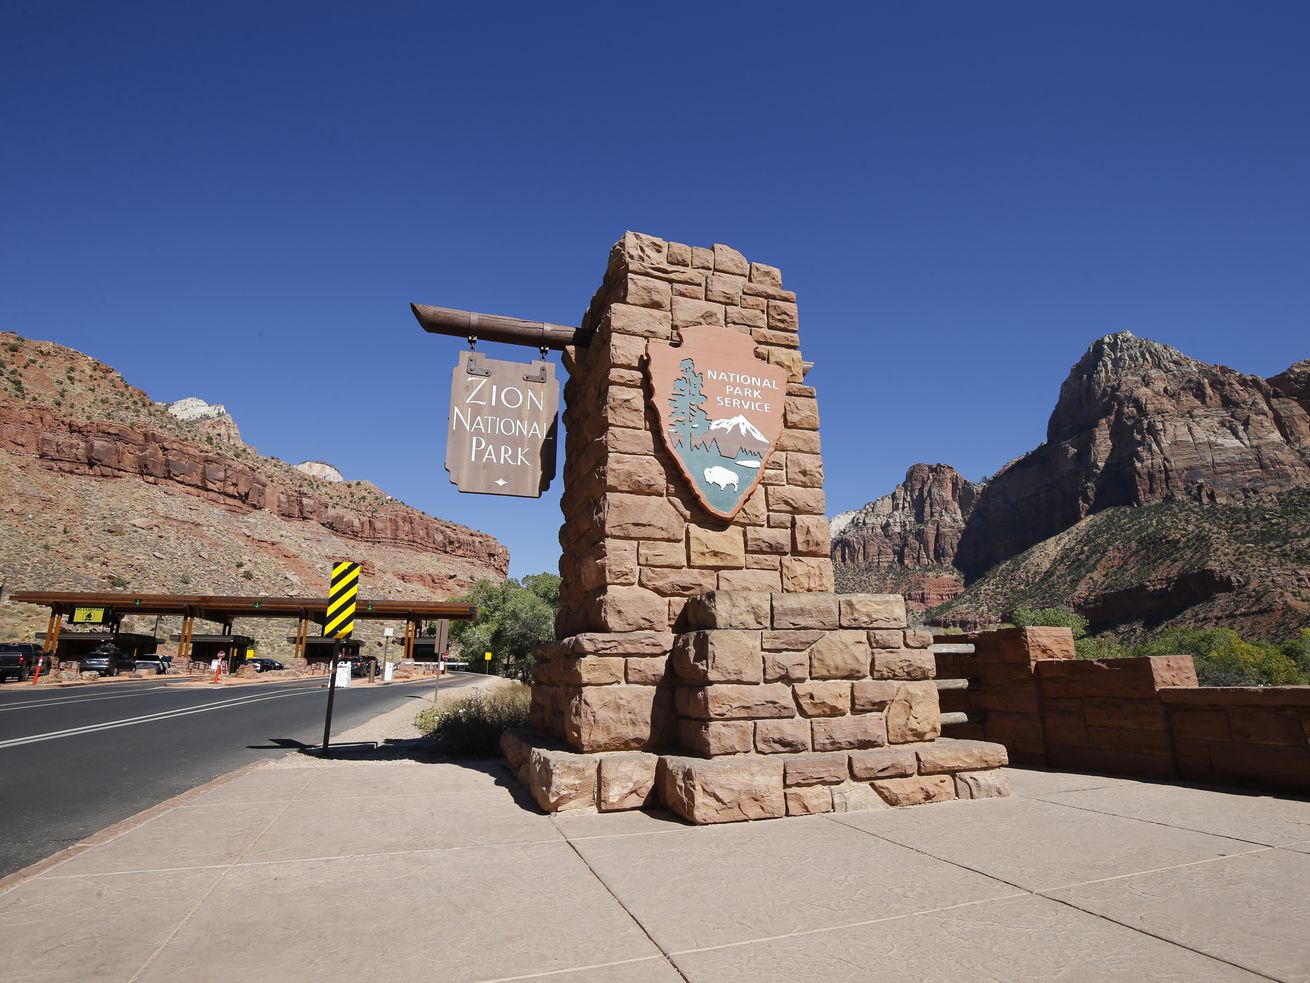 An entrance to Zion National Park is pictured on Wednesday, Oct. 14, 2020.